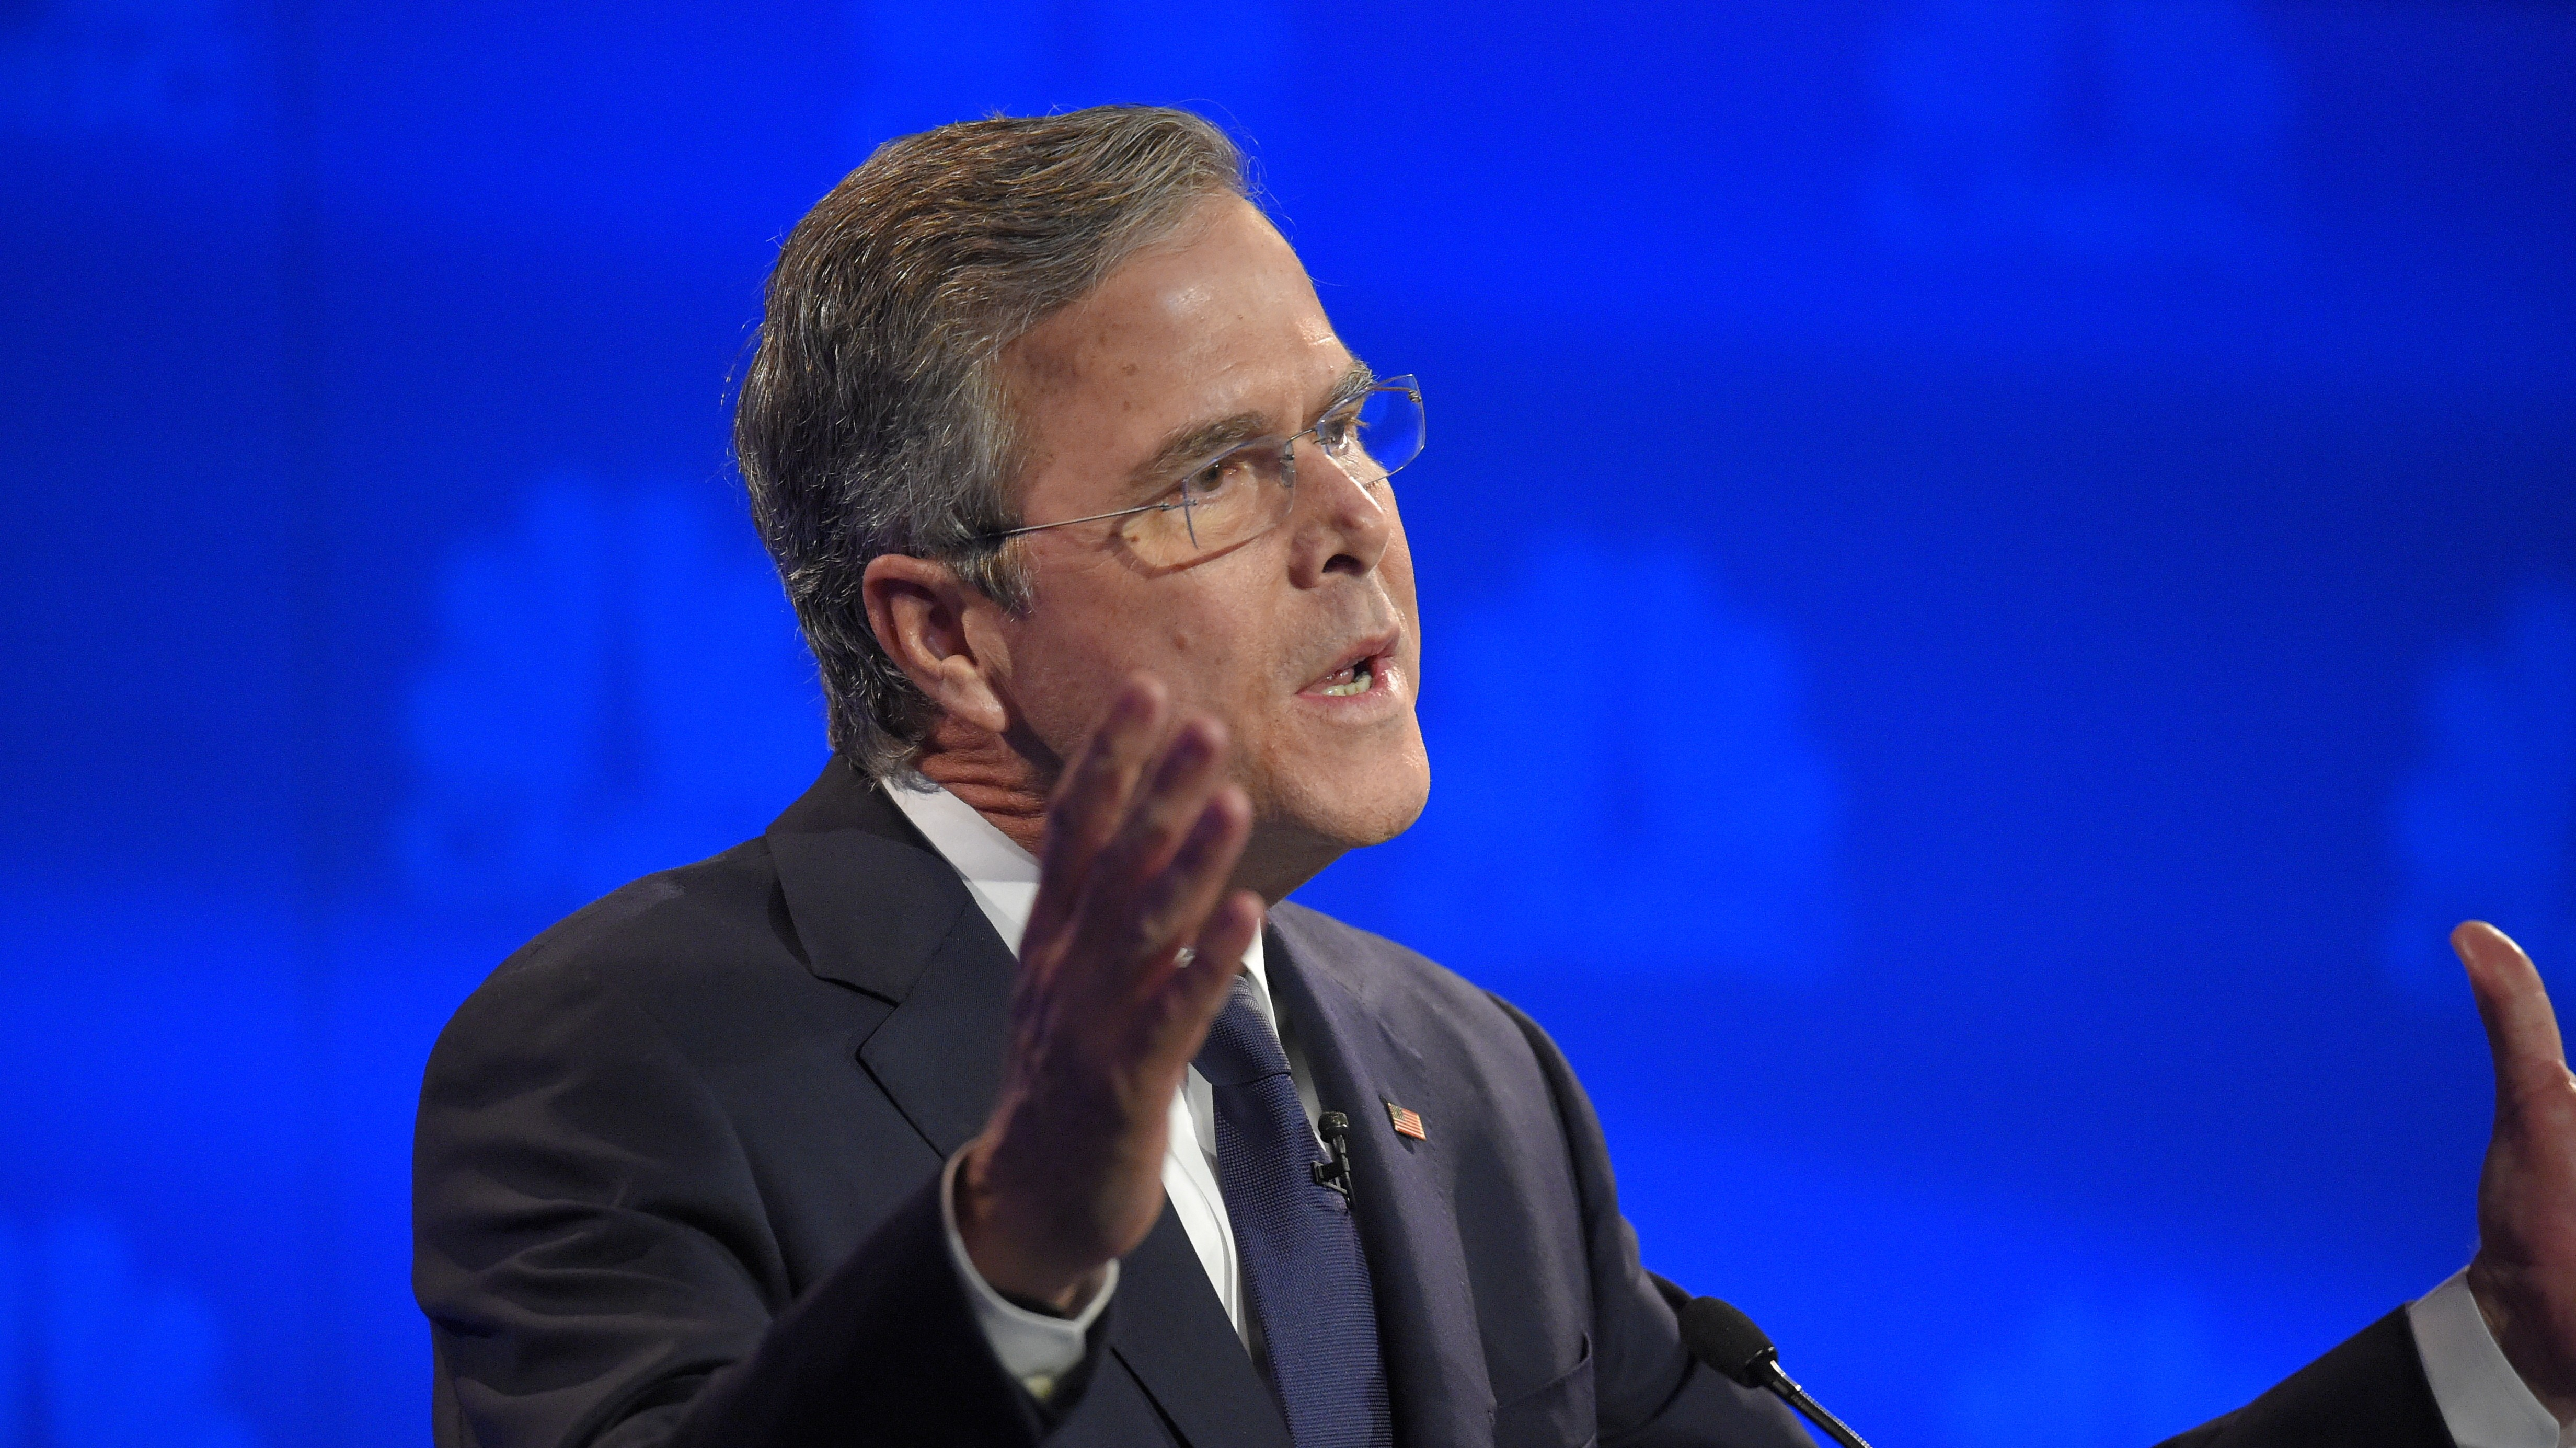 Yes, Jeb Bush Screwed Up Last Night — But Don't Count Him Out of the Race Just Yet